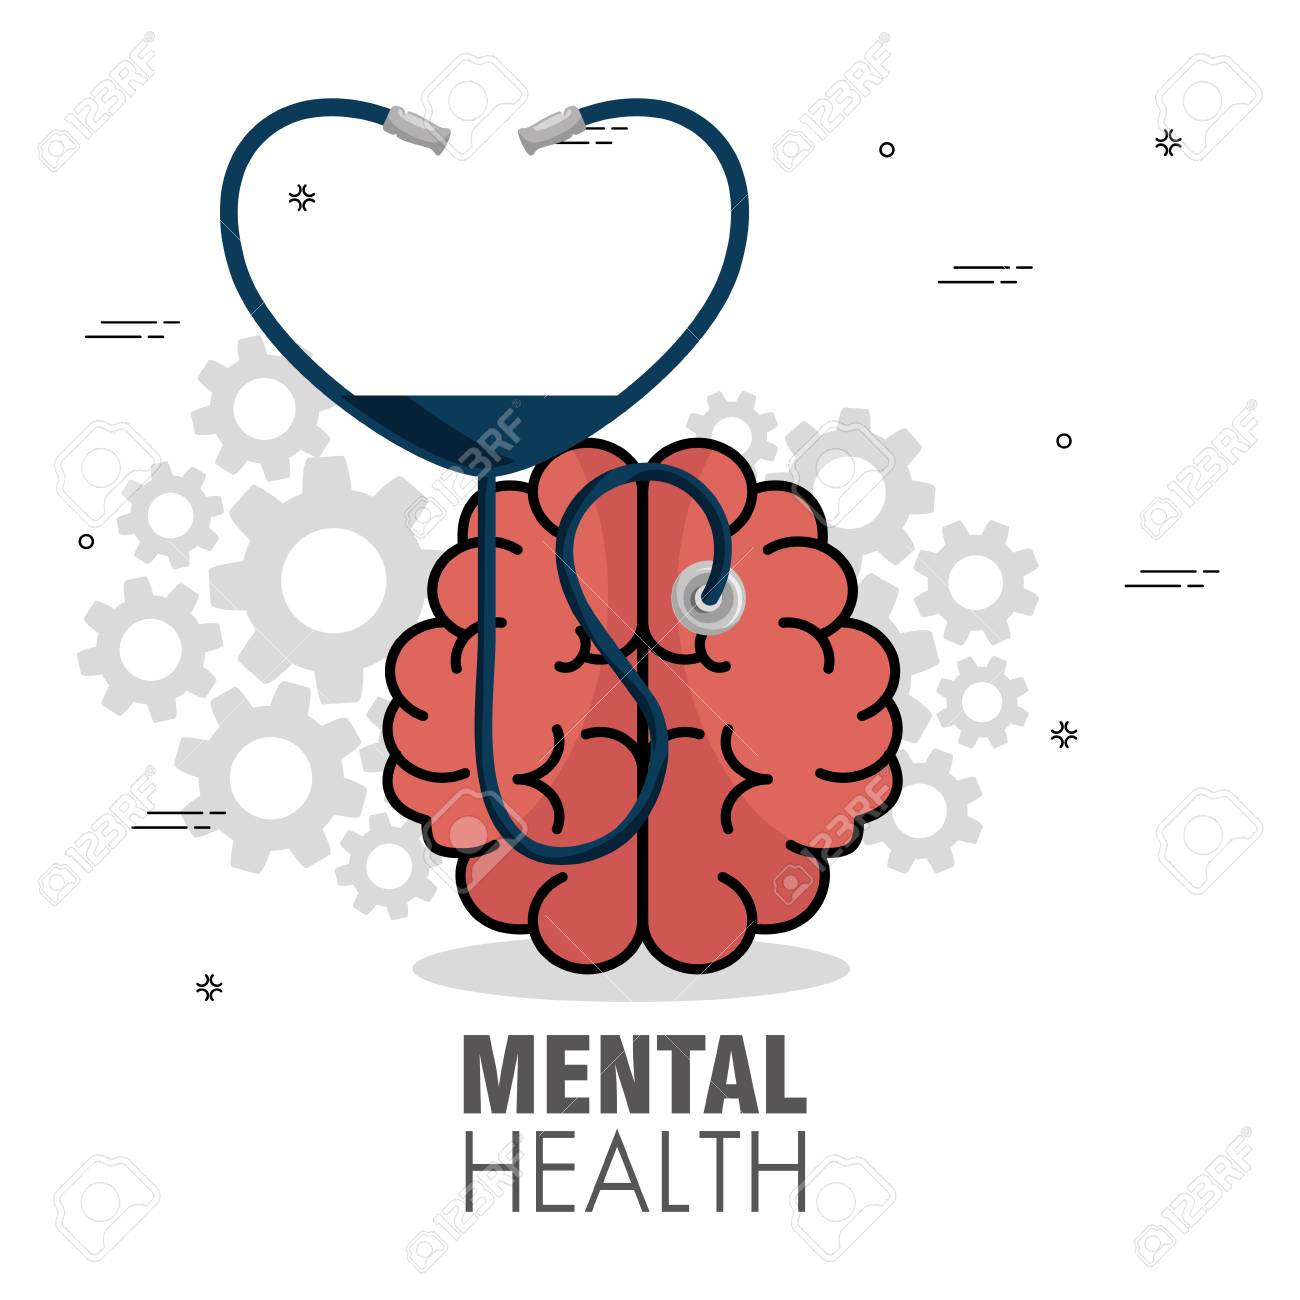 Mental Health Concept Day Mental Health Concept Day Royalty Free Cliparts Vectors And Stock Illustration Image 87694239